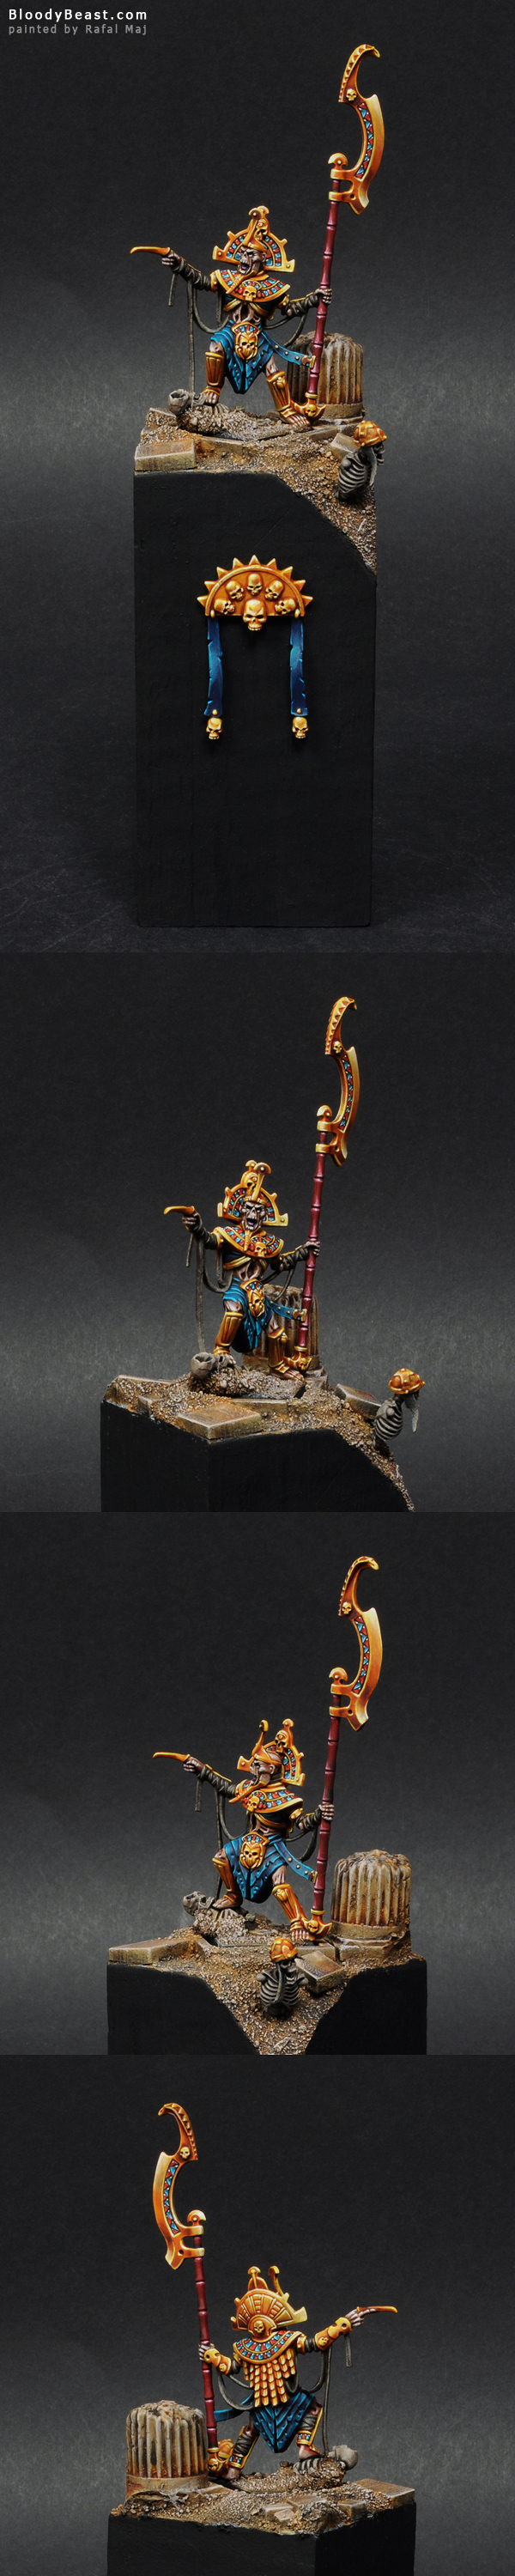 Tomb King on Plinth painted by Rafal Maj (BloodyBeast.com)